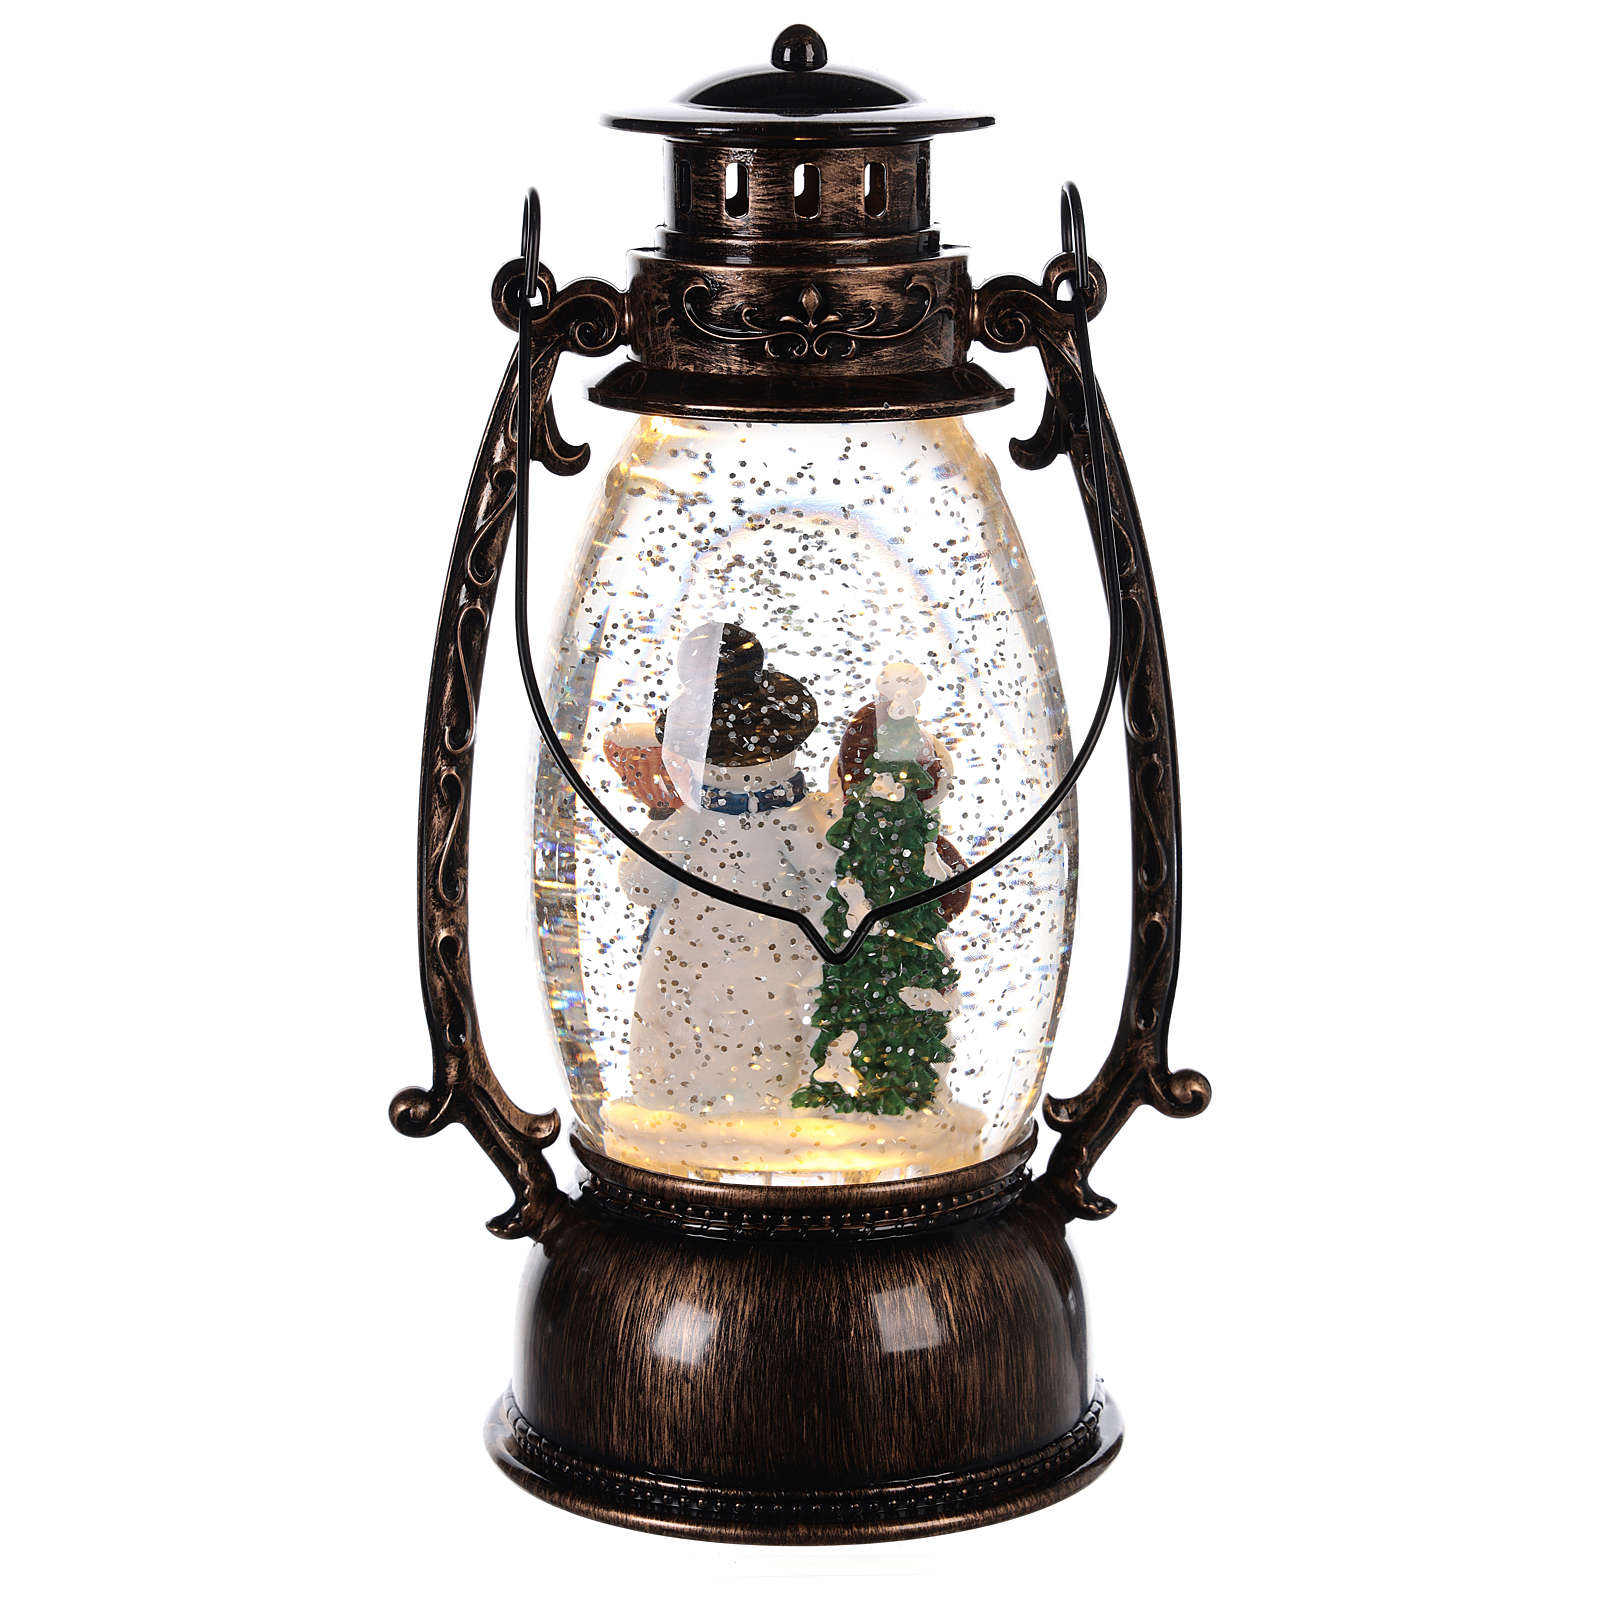 Snowball with family of puppets inside a 25x10 cm lantern 3